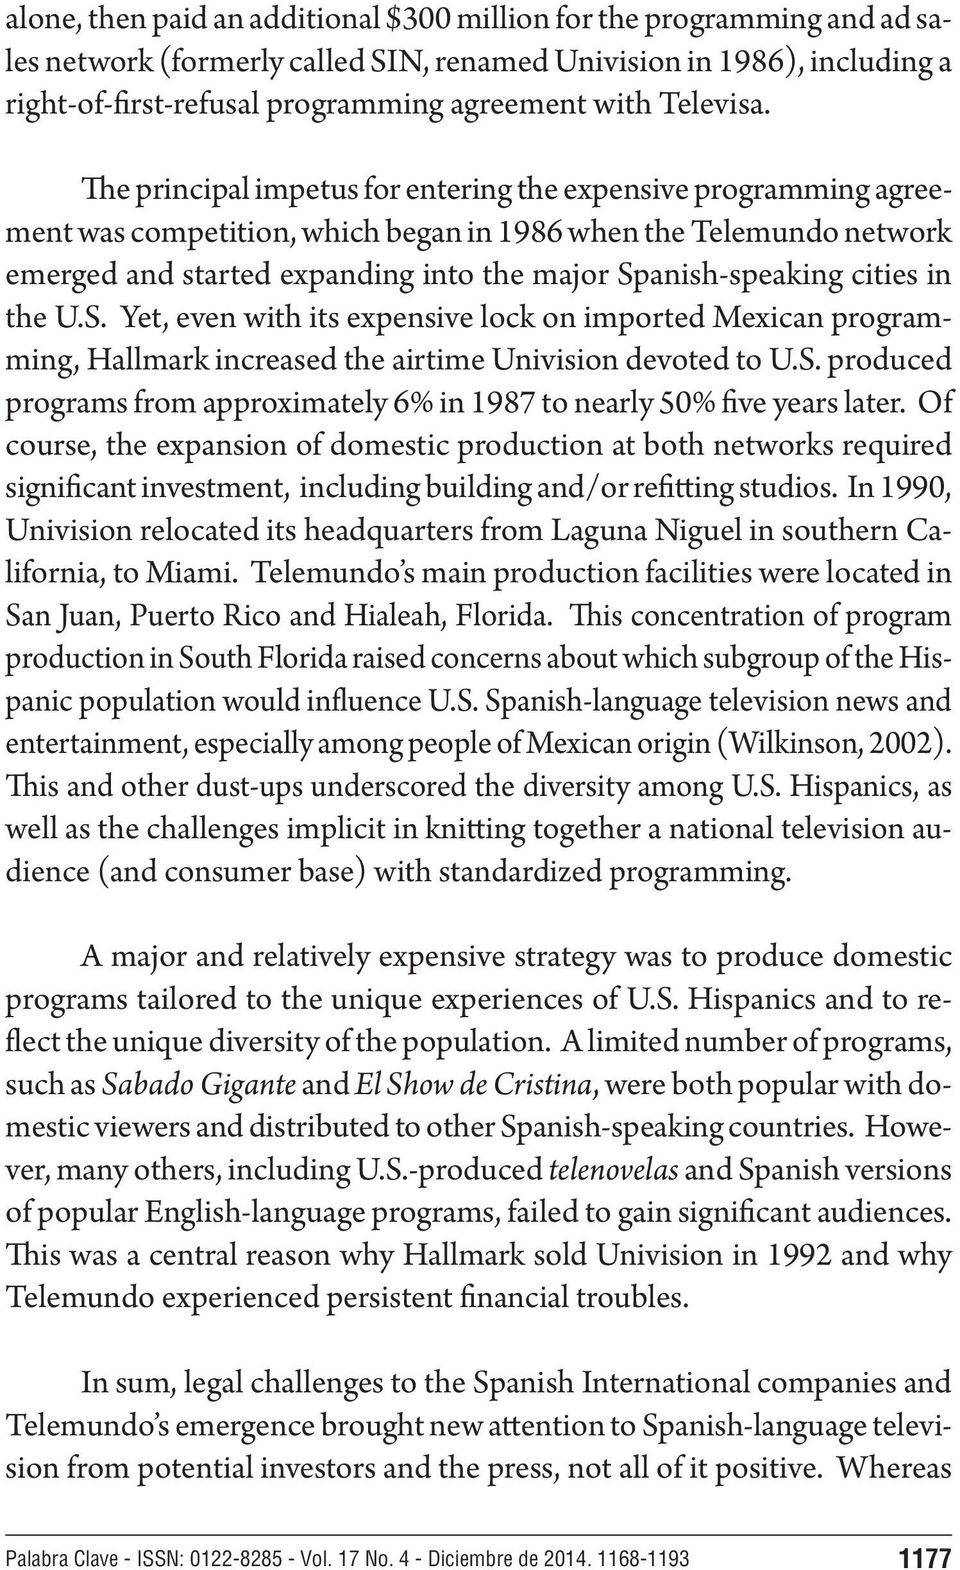 The principal impetus for entering the expensive programming agreement was competition, which began in 1986 when the Telemundo network emerged and started expanding into the major Spanish-speaking